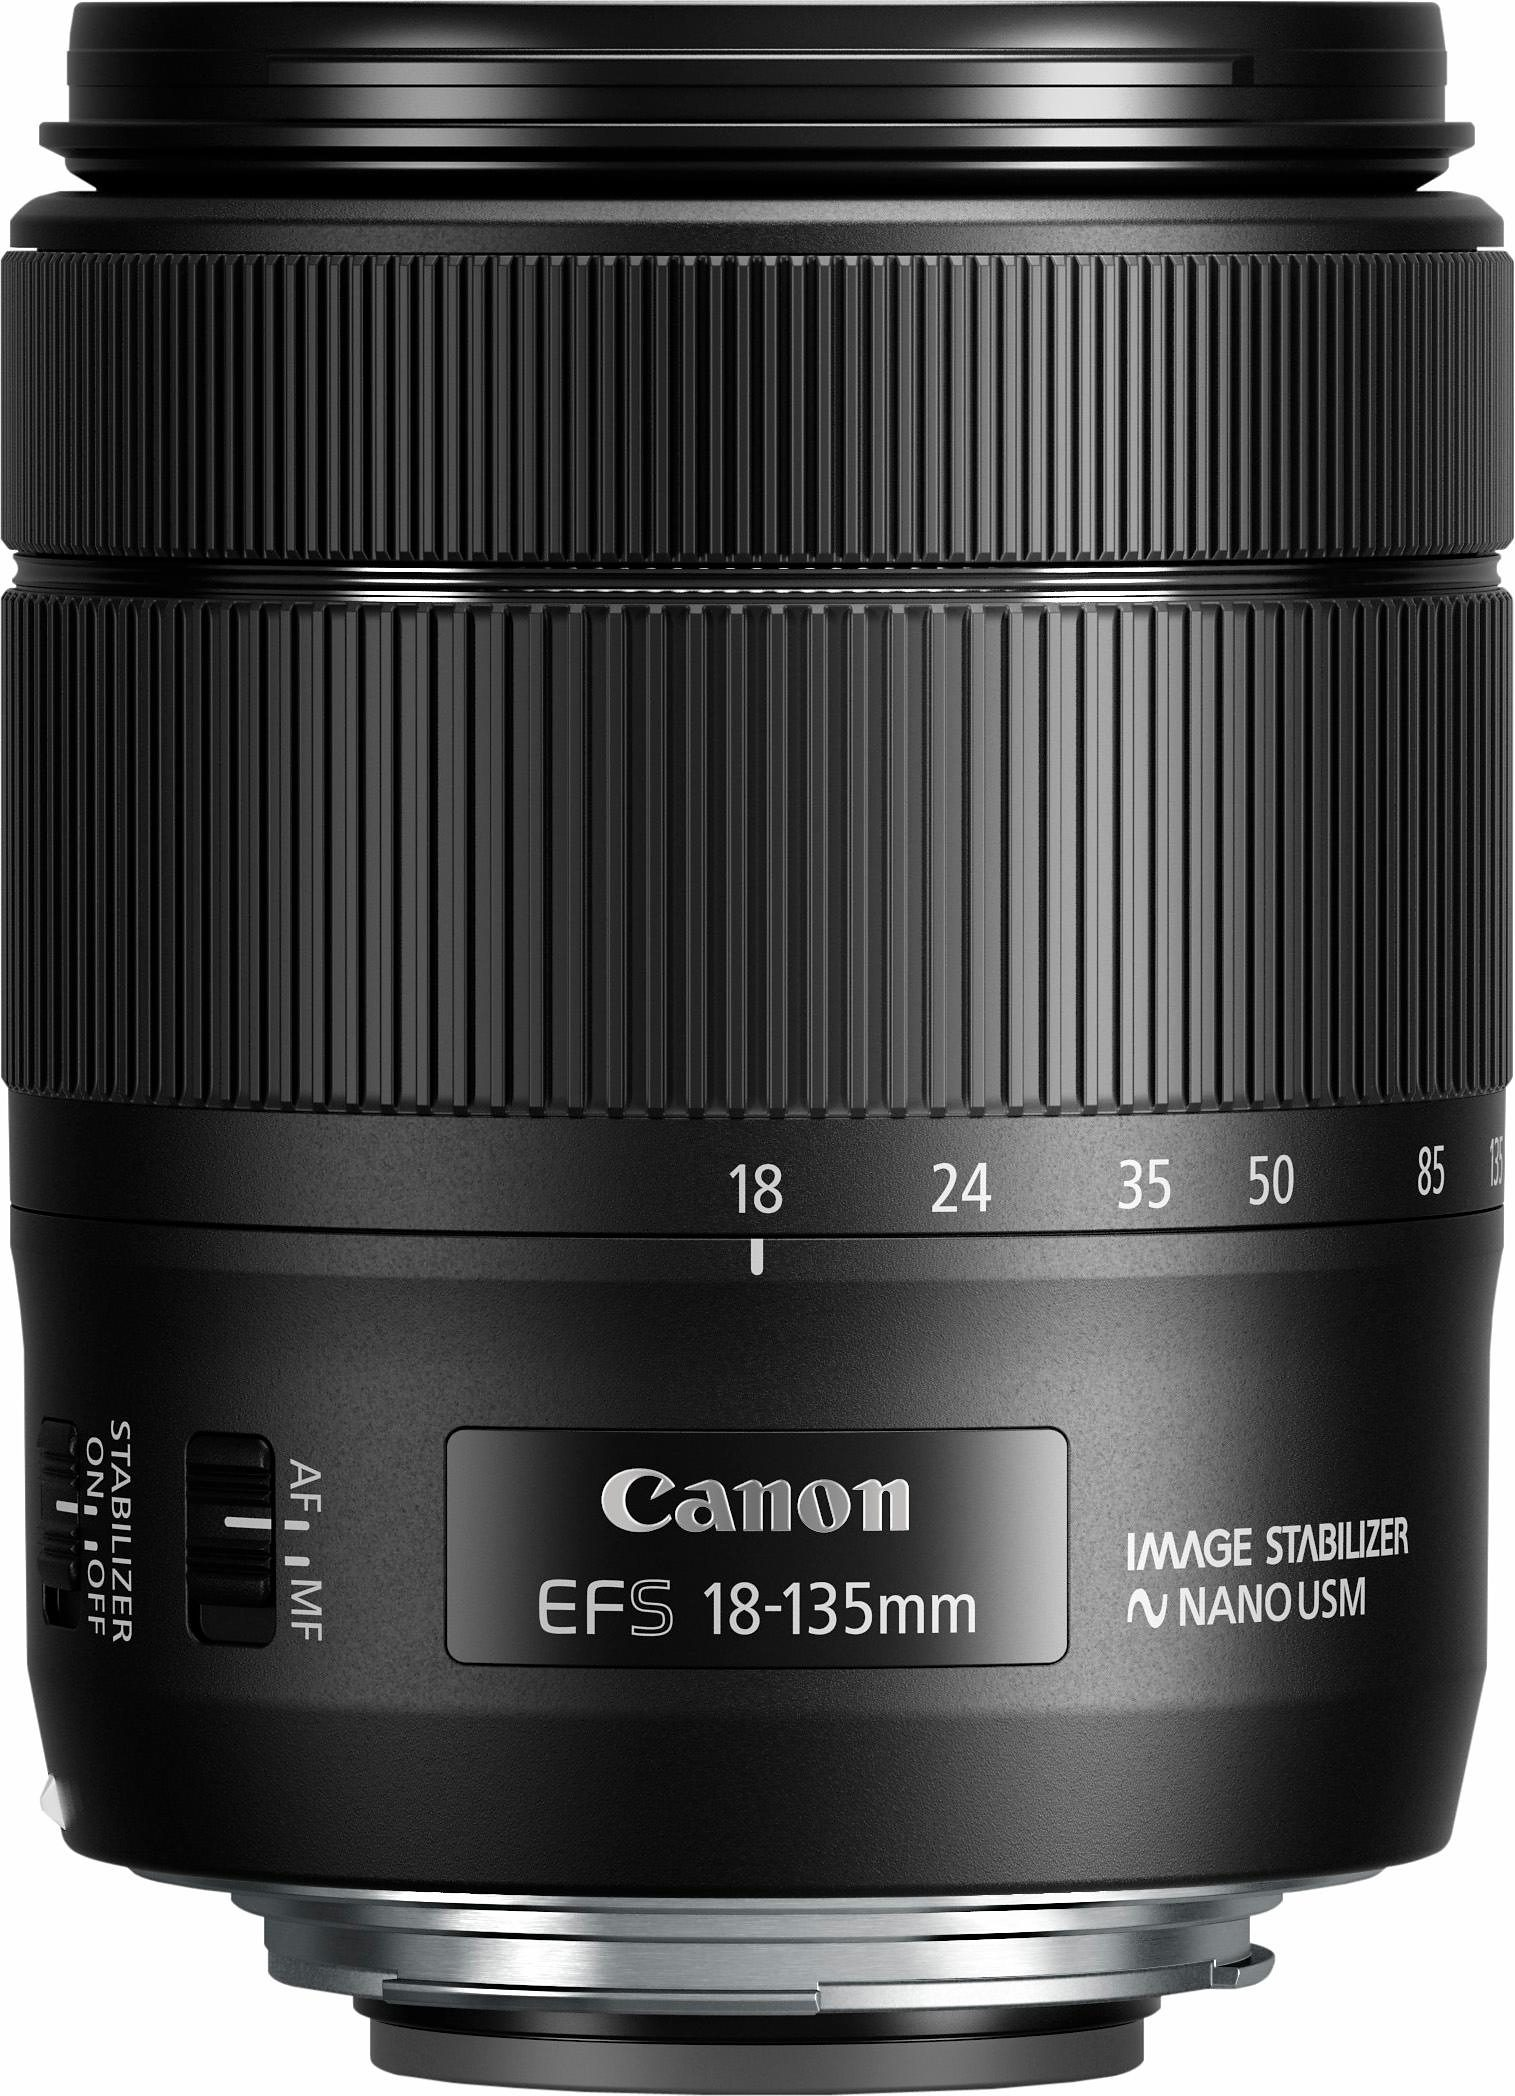 Canon EF-S 18-135mm f/3,5-5,6 IS USM Weitwinkel Objektiv